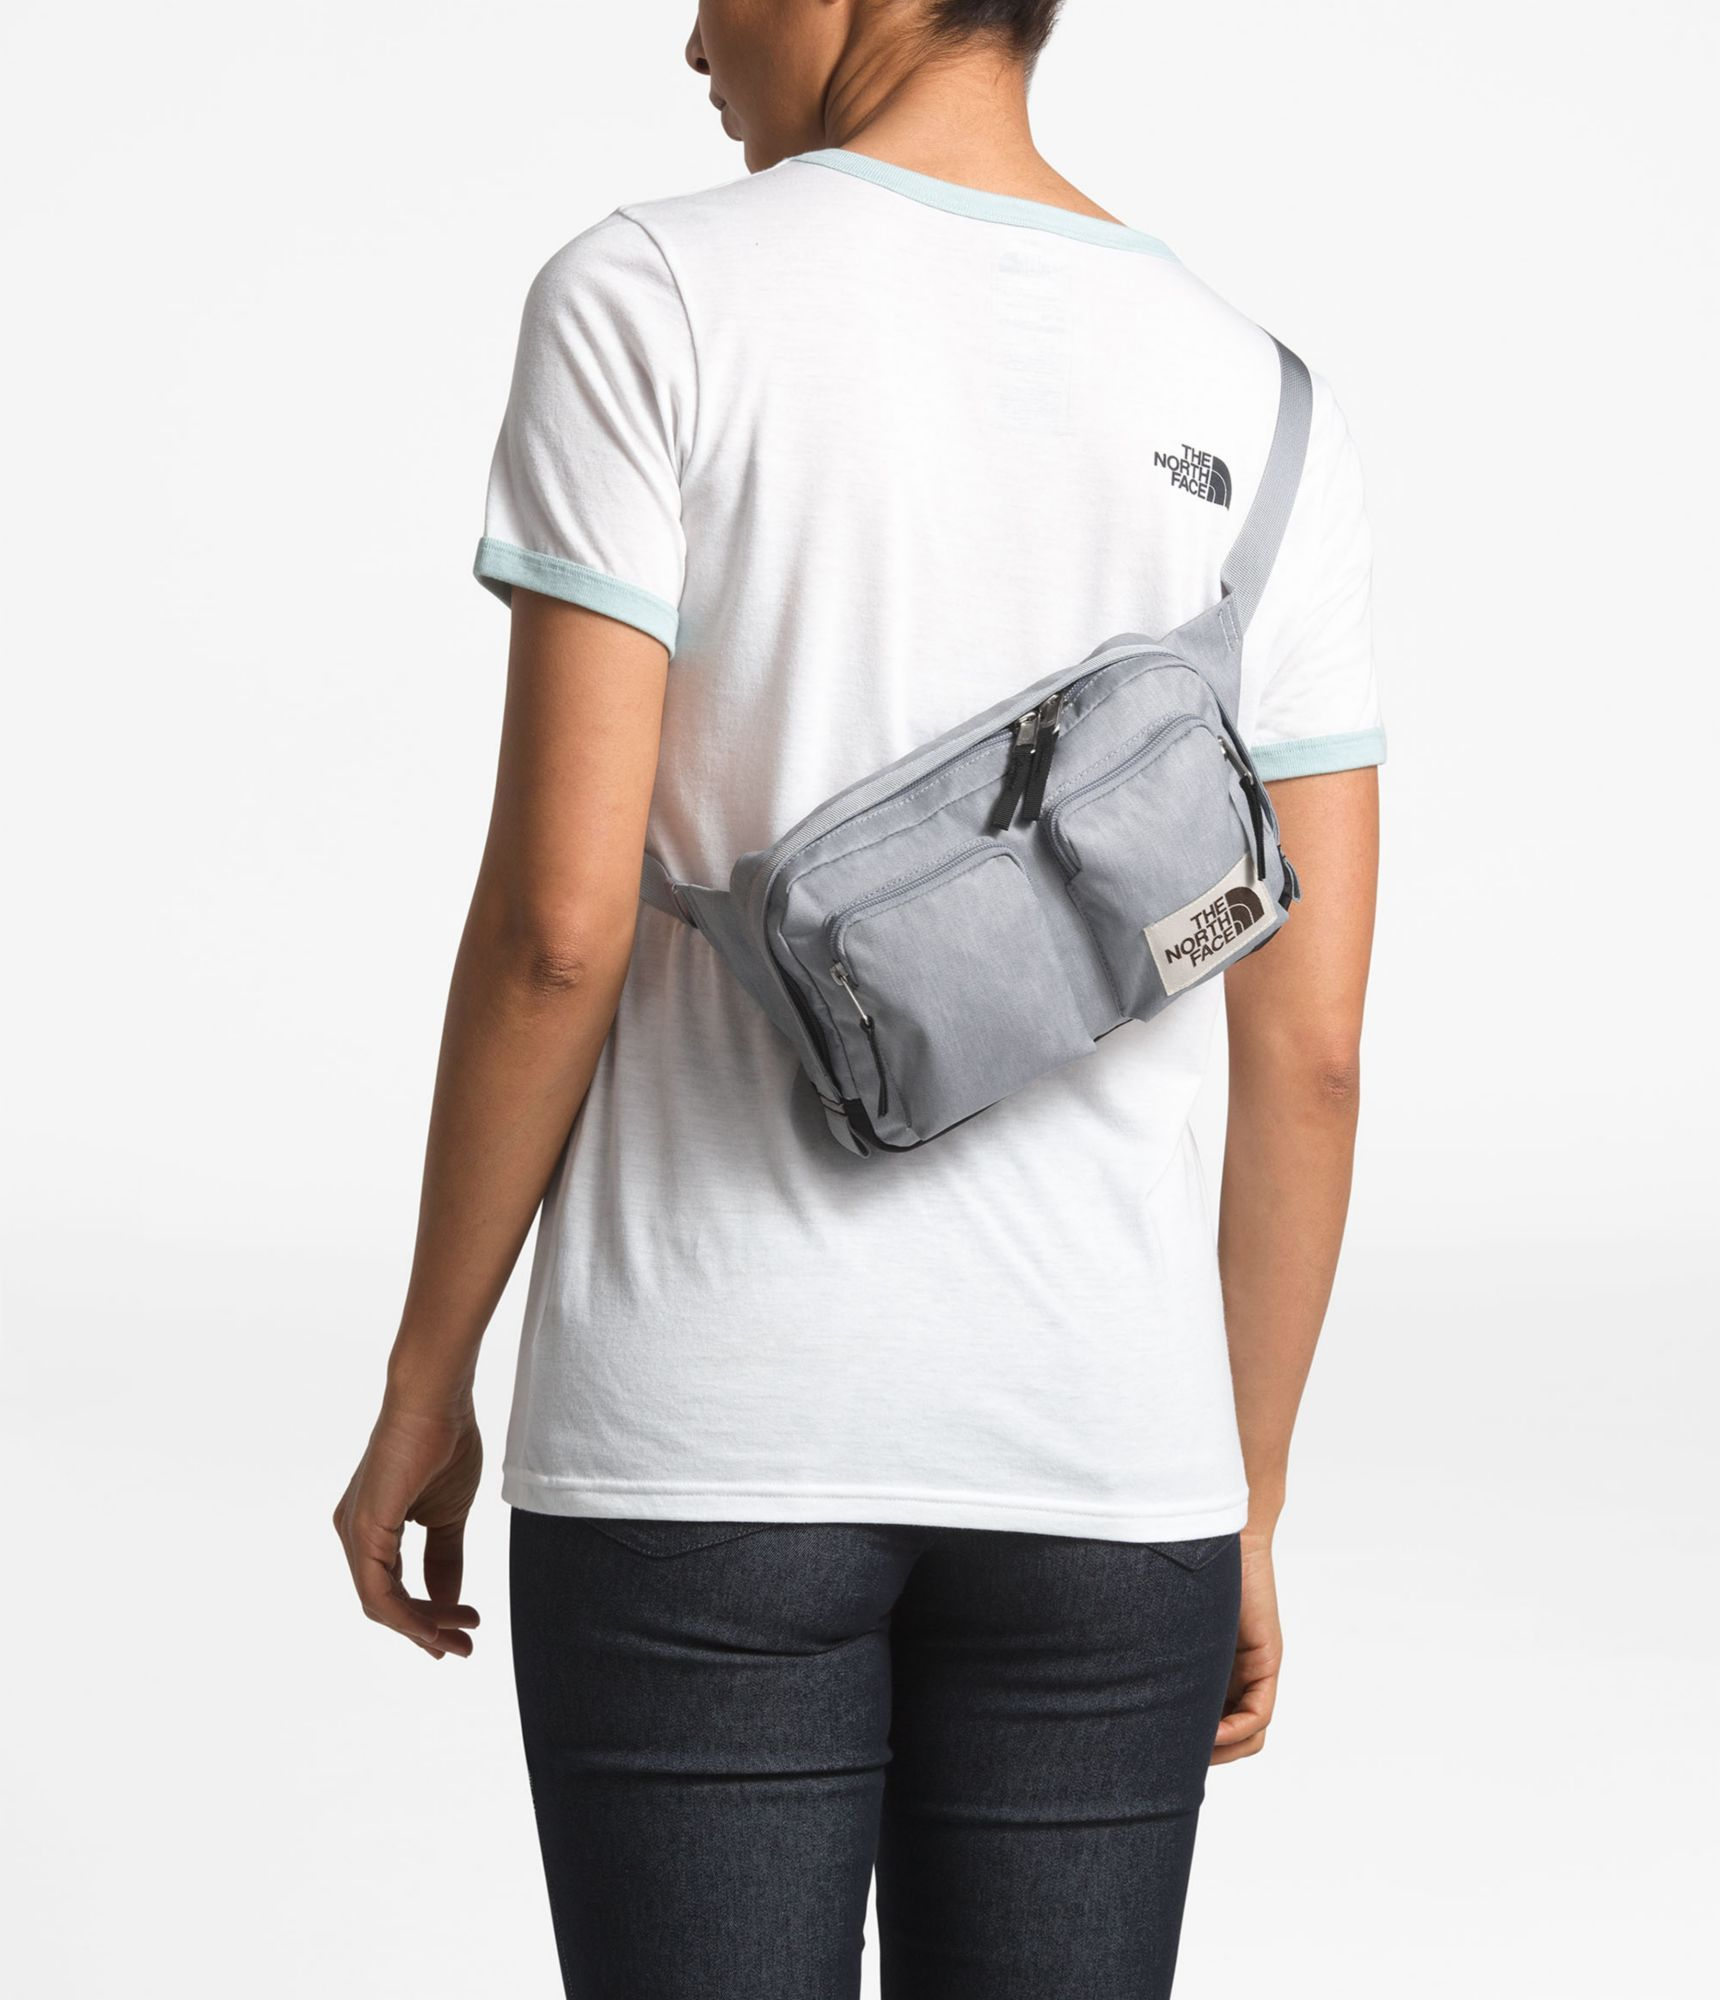 ef8e8f971fa5 The North Face Kanga Bag, Gray | Products in 2019 | Bags, Bag ...